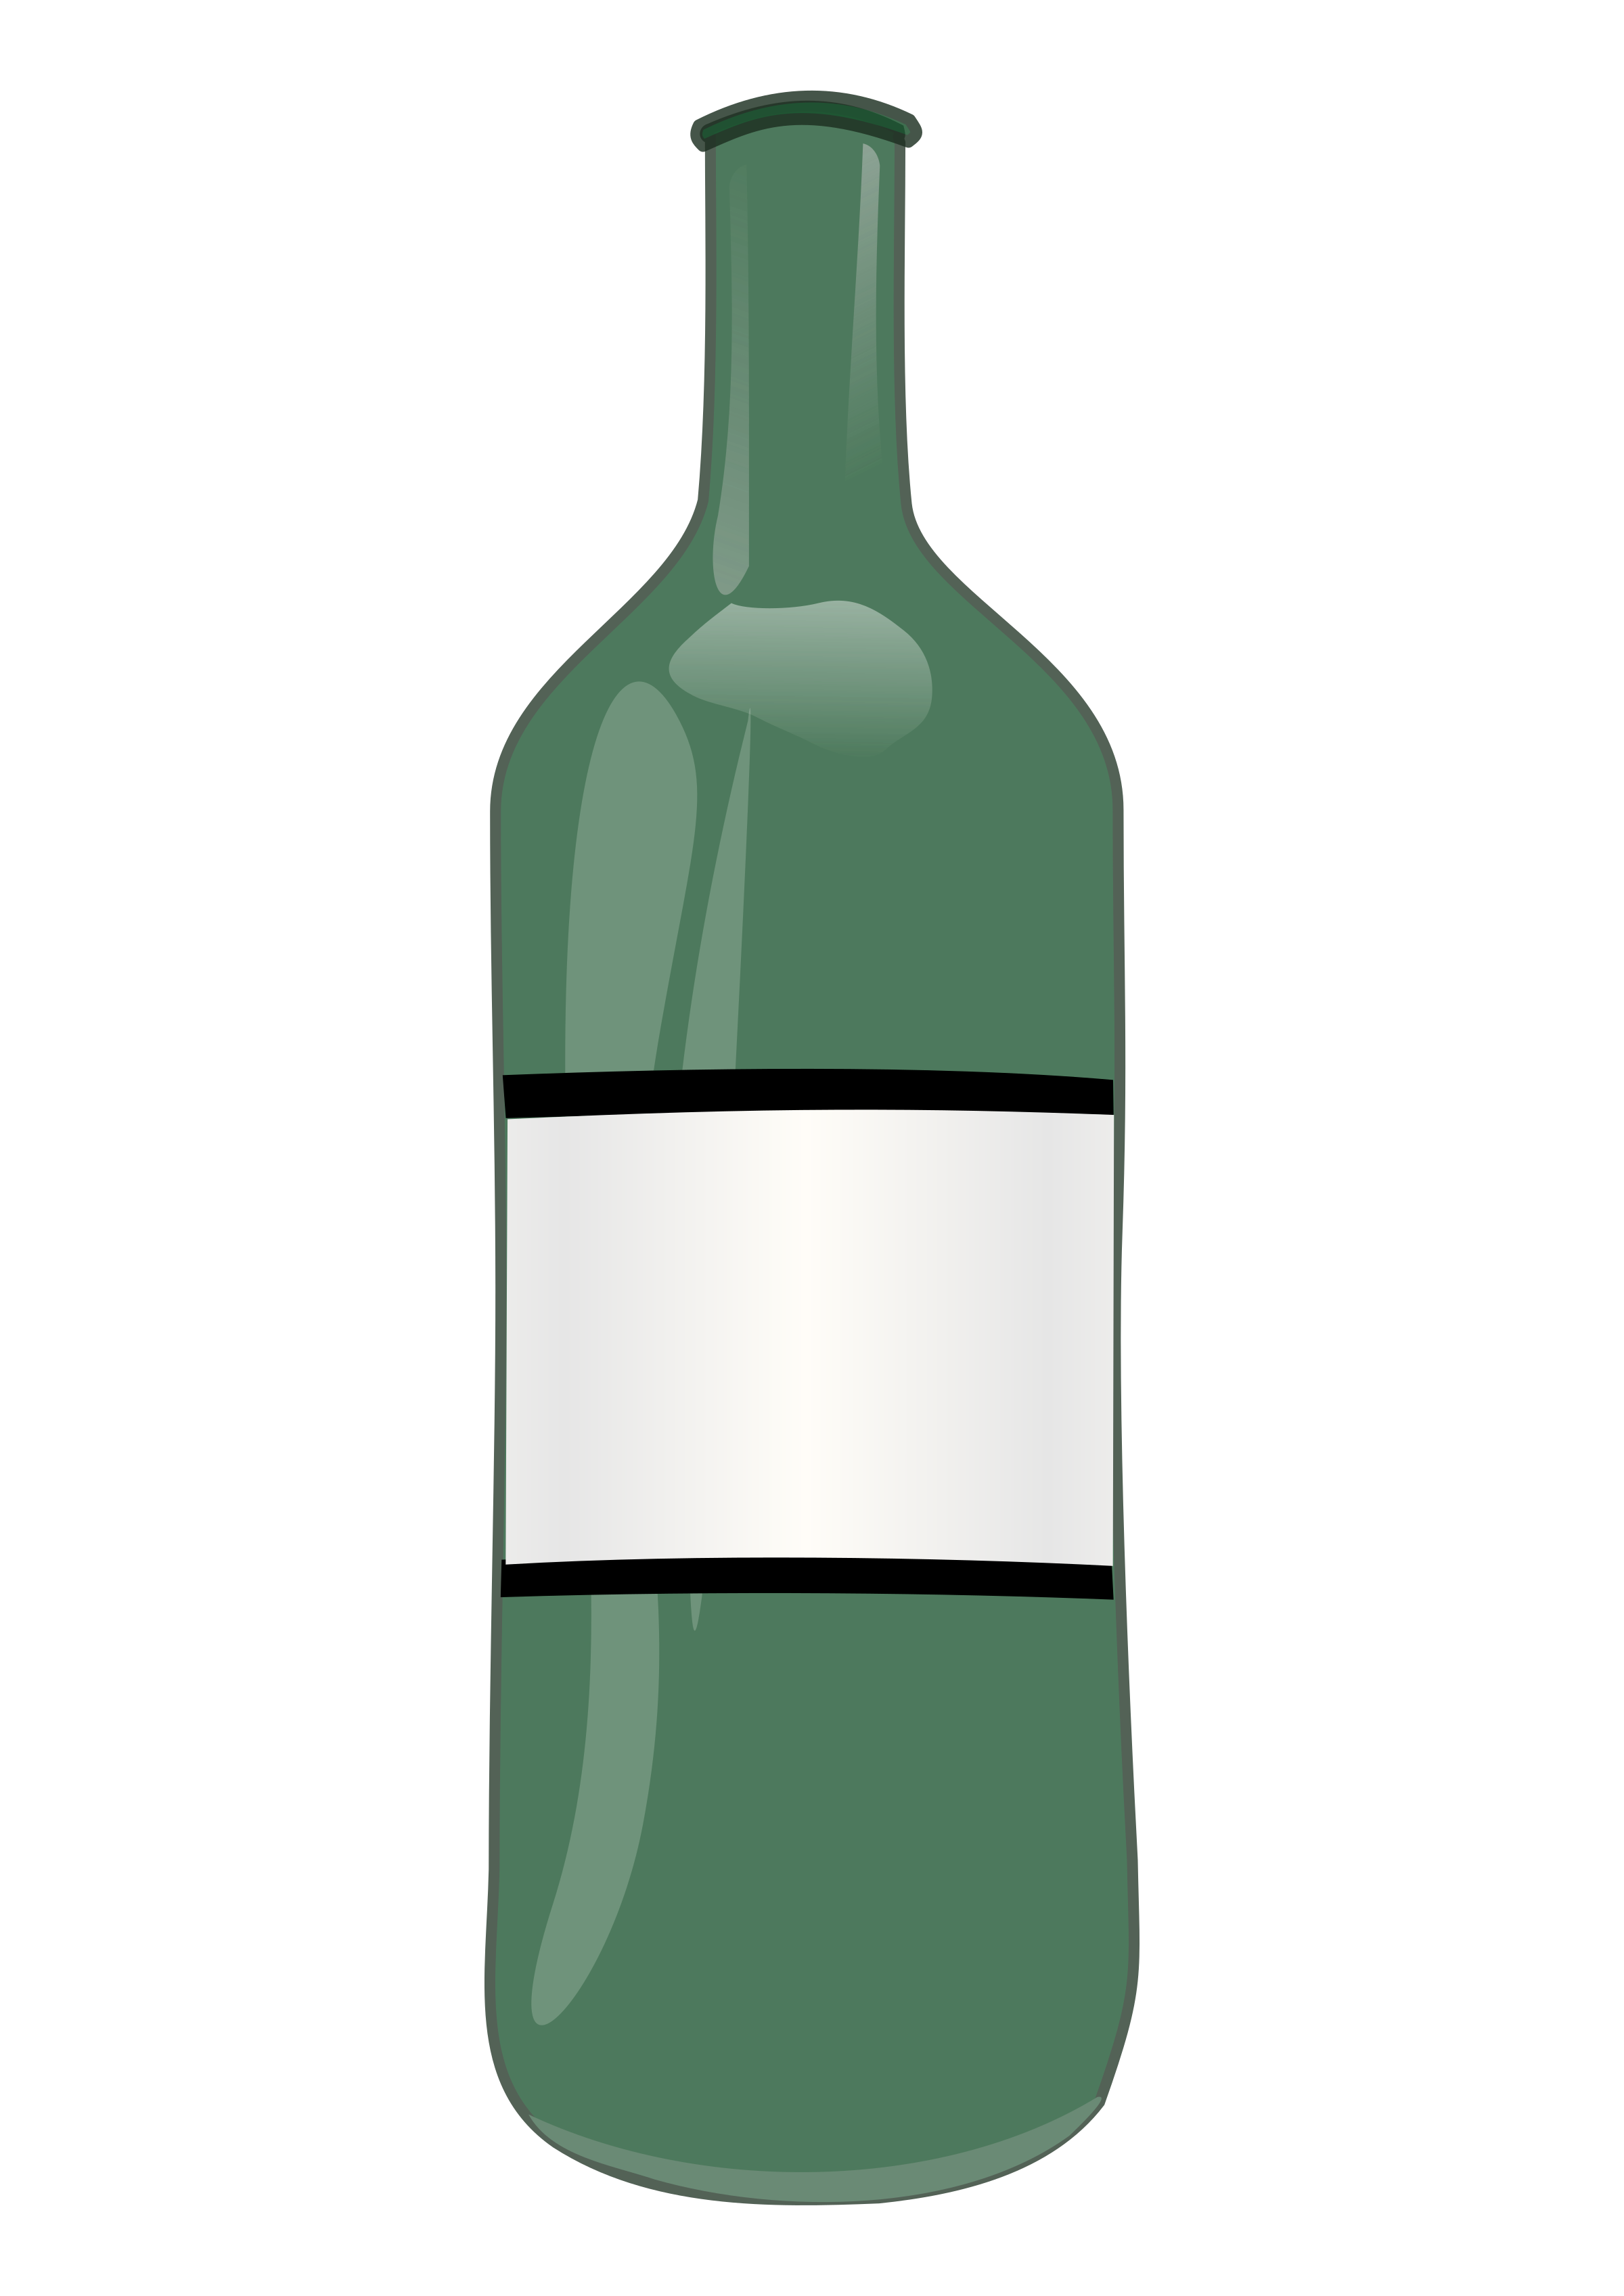 svg library stock Beer clipart beer wine. Bottle icons png free.